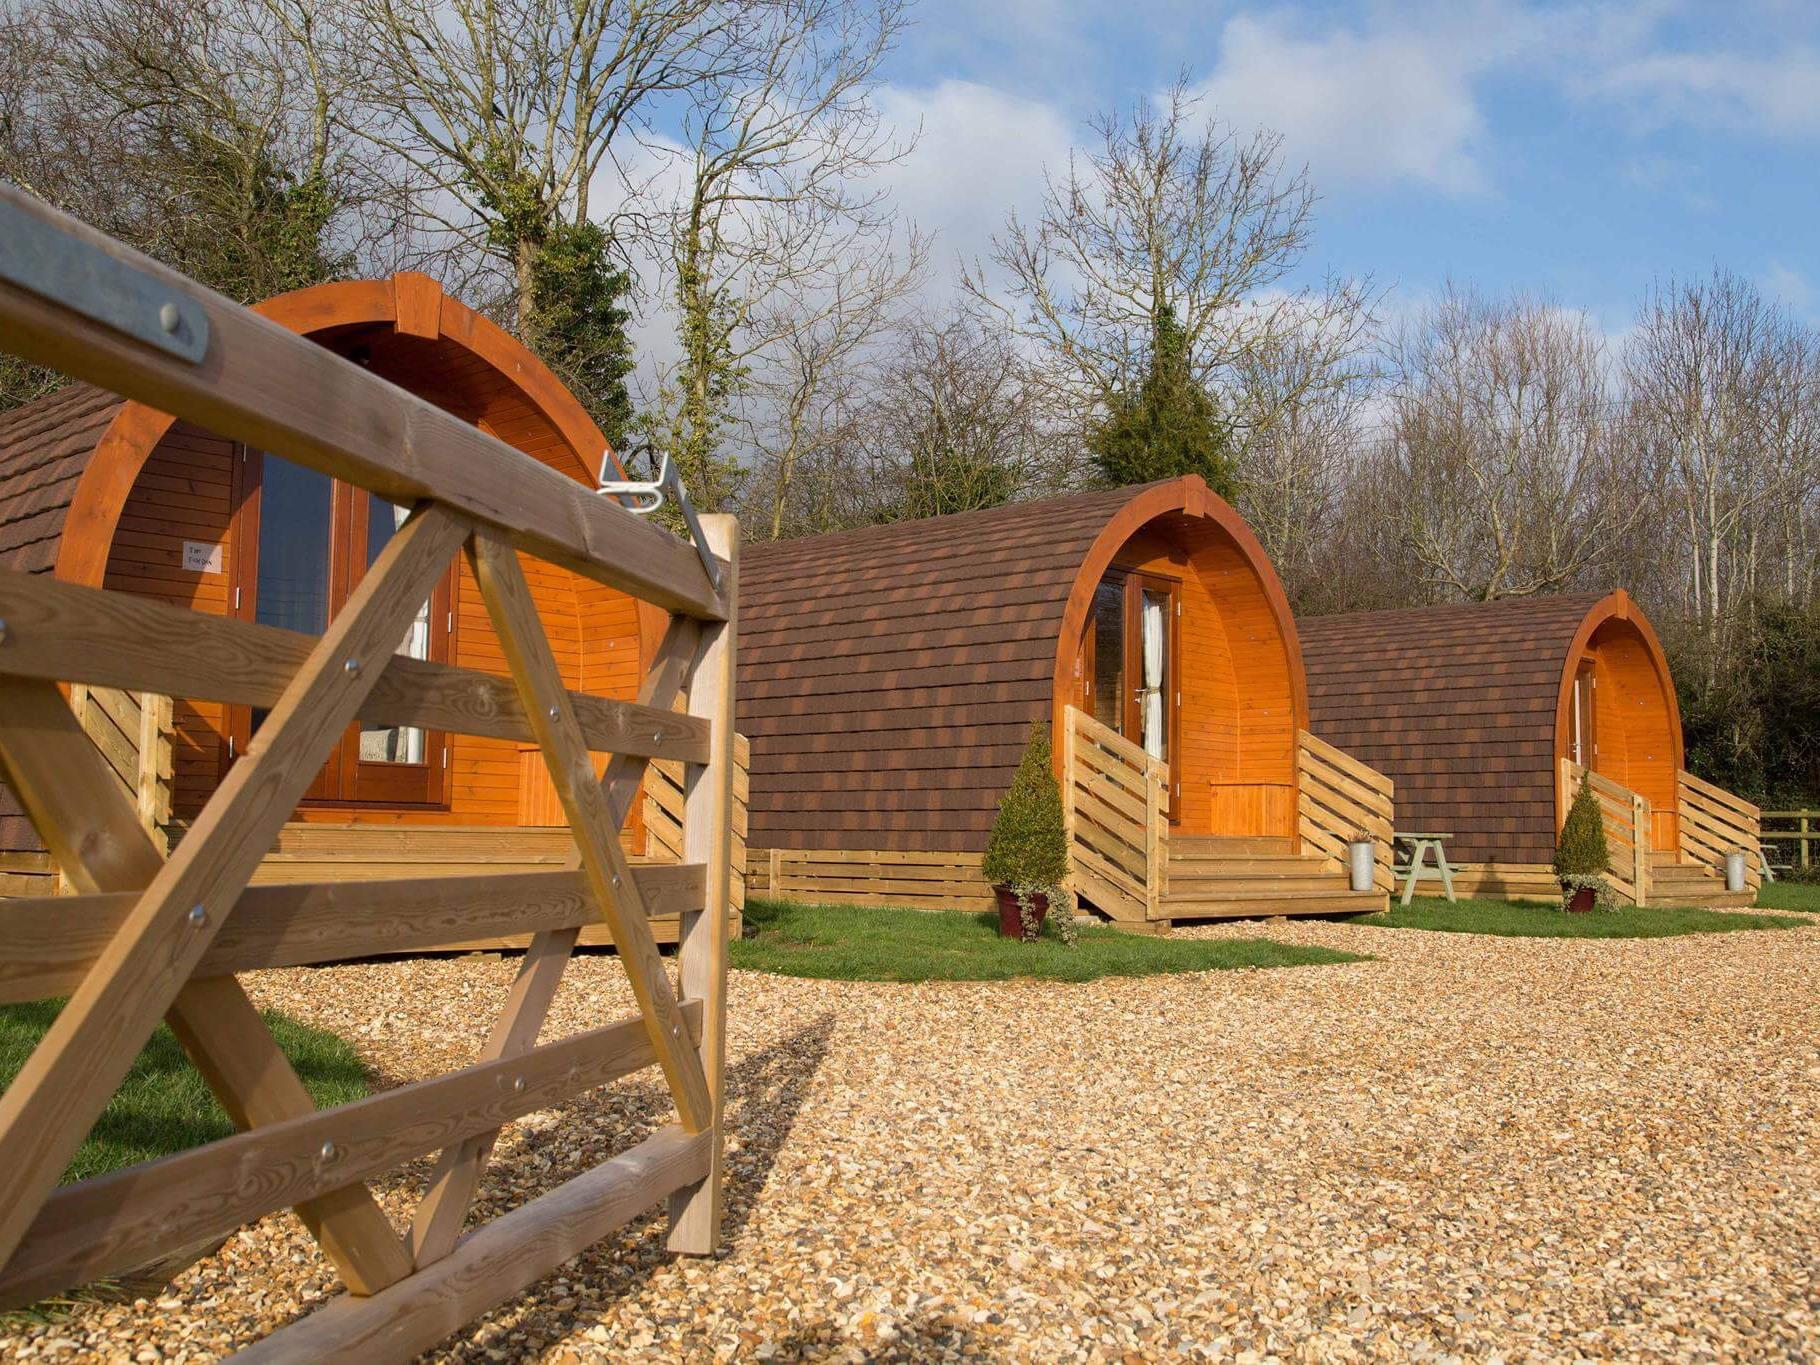 Cabin-Ensuite with Shower-Glamping Pod Fox Den